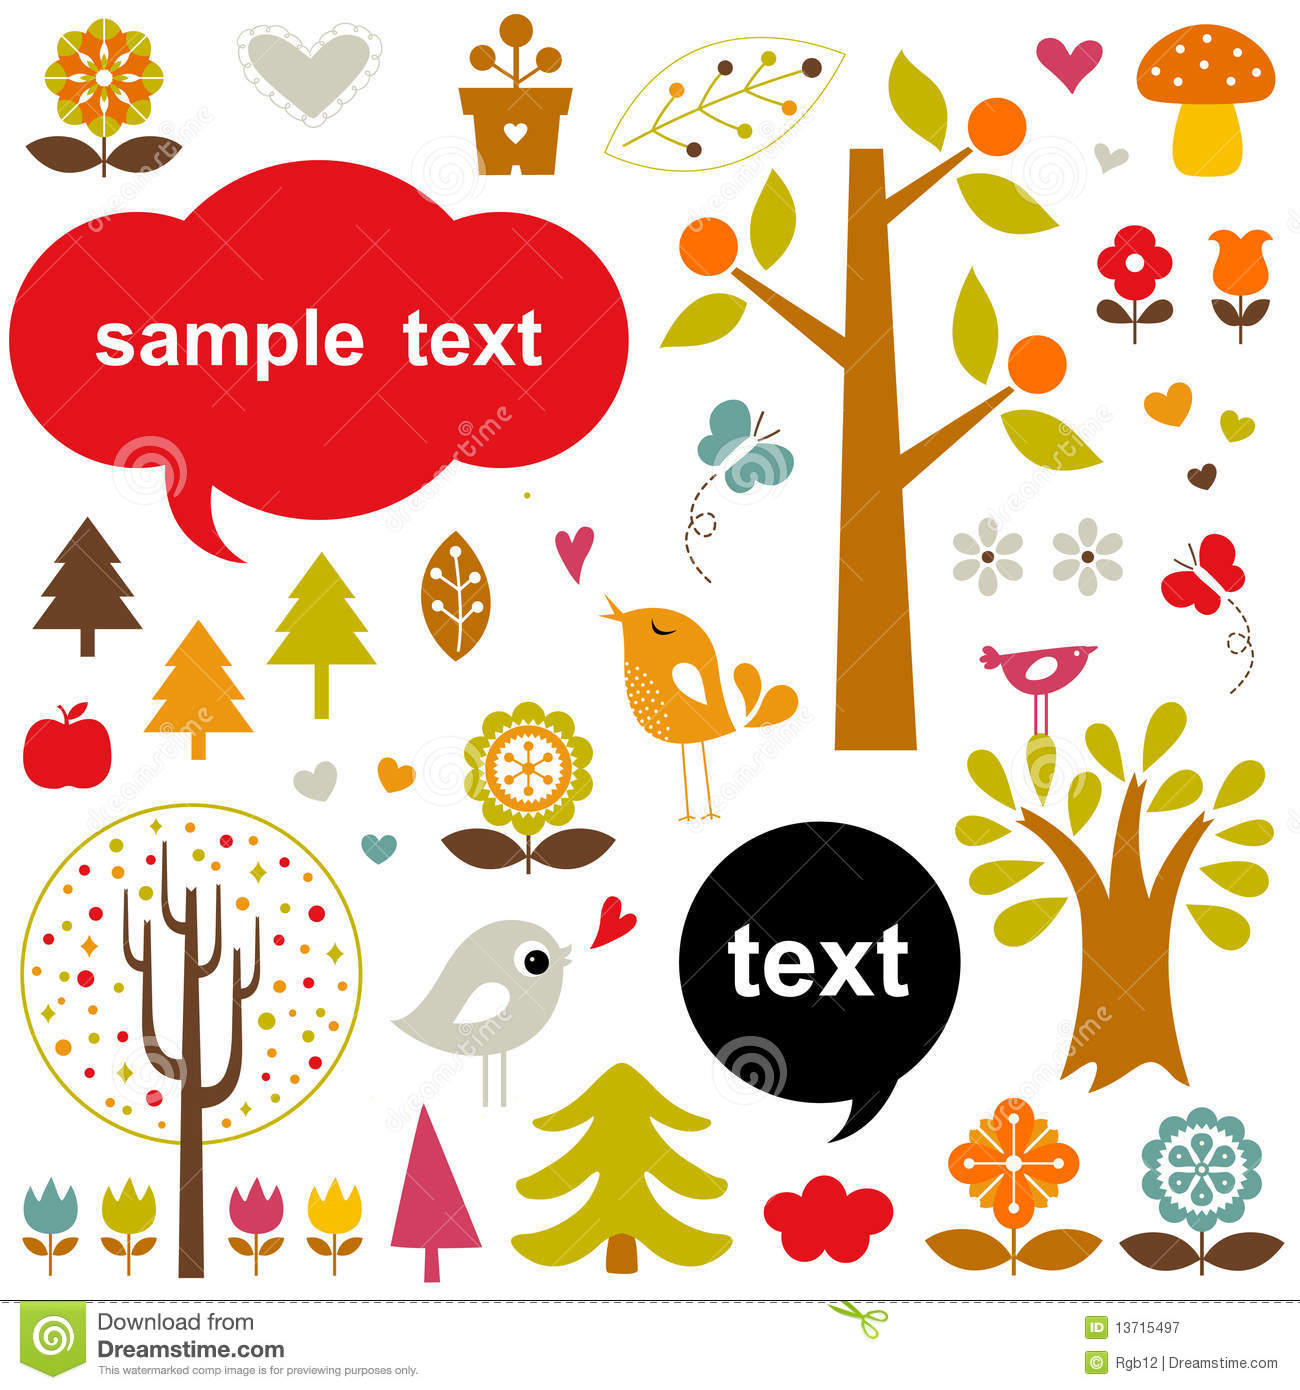 Vector birds and trees set